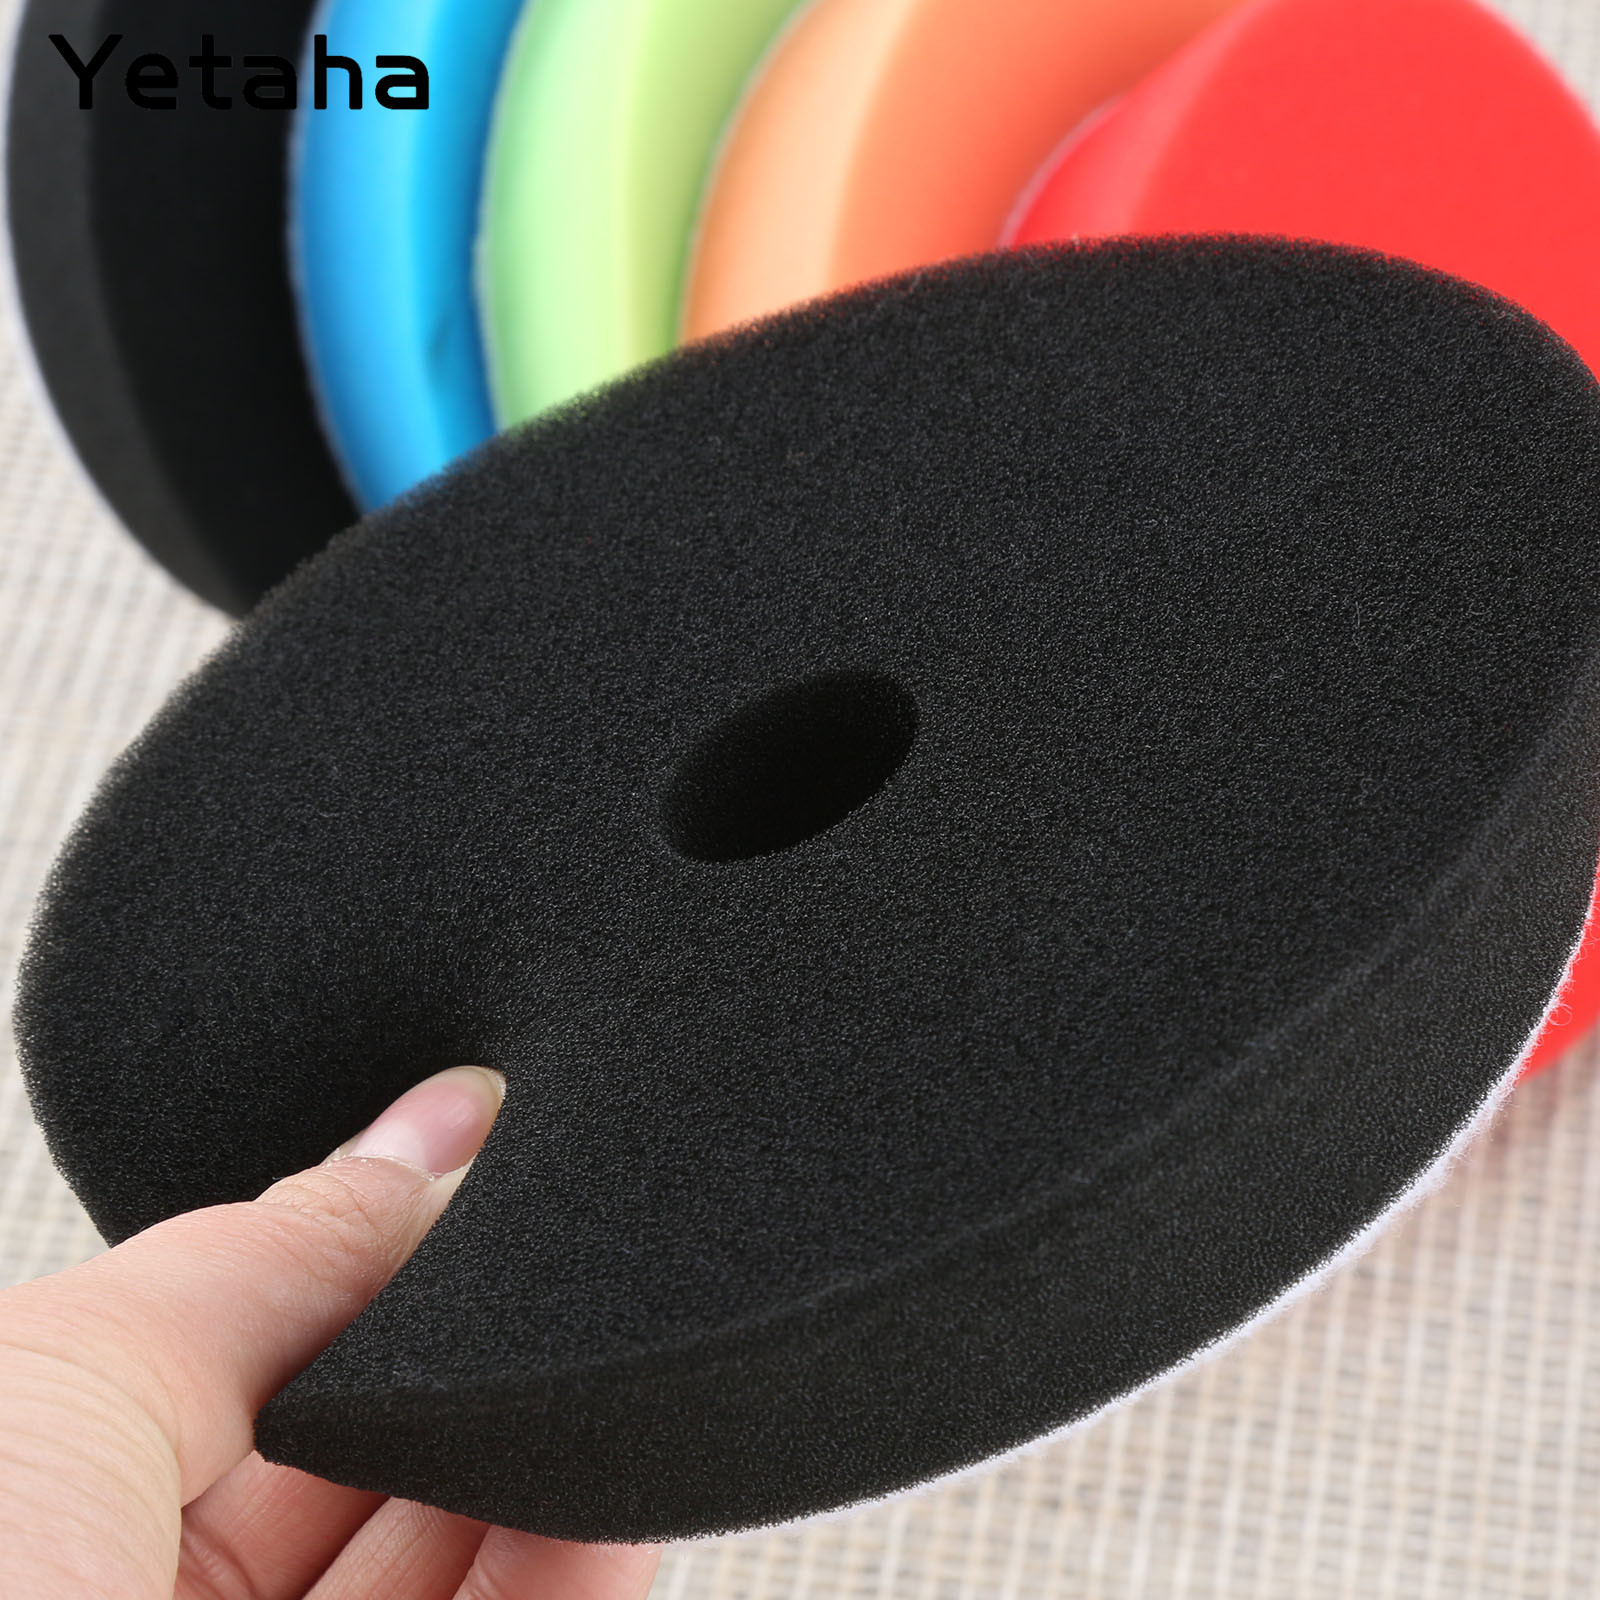 Image 2 - Yetaha 5Pcs 6inch 150mm Car Polishing Buffing Sponge Pads Set Car Wash For Car Polisher Cleaning Detailing Polishing Tool-in Sponges, Cloths & Brushes from Automobiles & Motorcycles